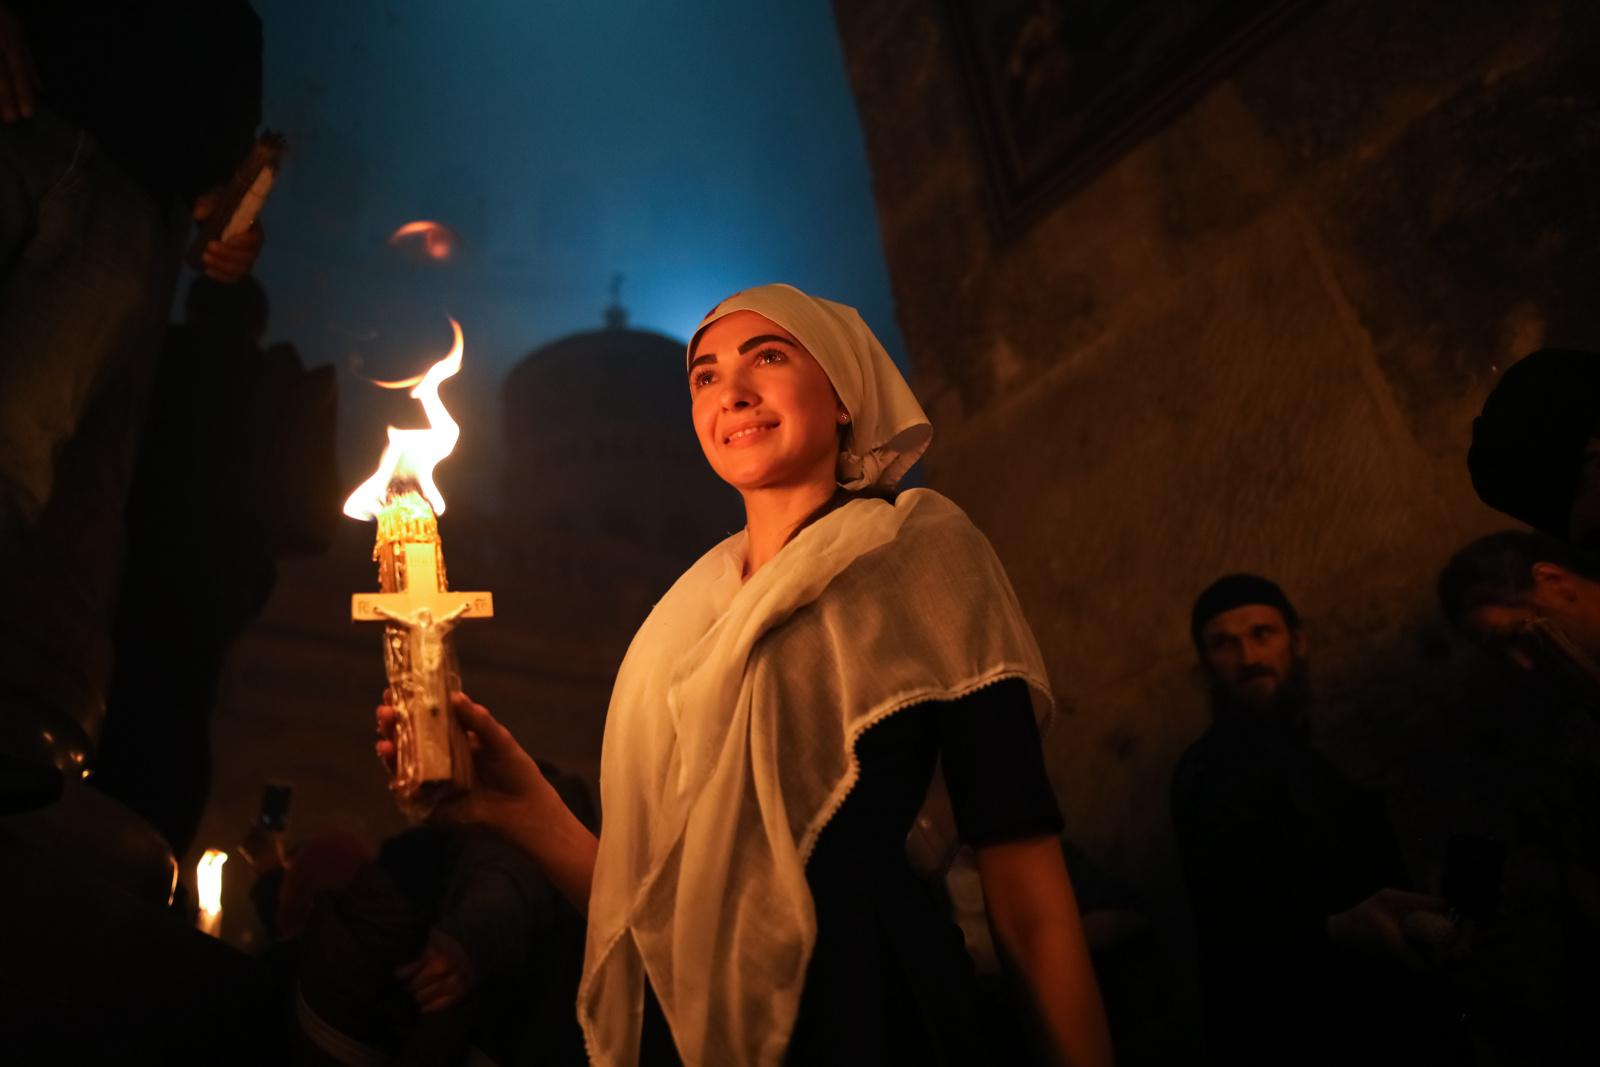 """Christian Orthodox worshippers hold up candles during the ceremony of the """"Holy Fire"""" as thousands gather in the Church of the Holy Sepulchre in Jerusalem's Old City, on April 15, 2017, during Orthodox Easter ceremonies. The ceremony celebrated in the same way for eleven centuries, is marked by the appearance of """"sacred fire"""" in the two cavities on either side of the Holy Sepulchre."""